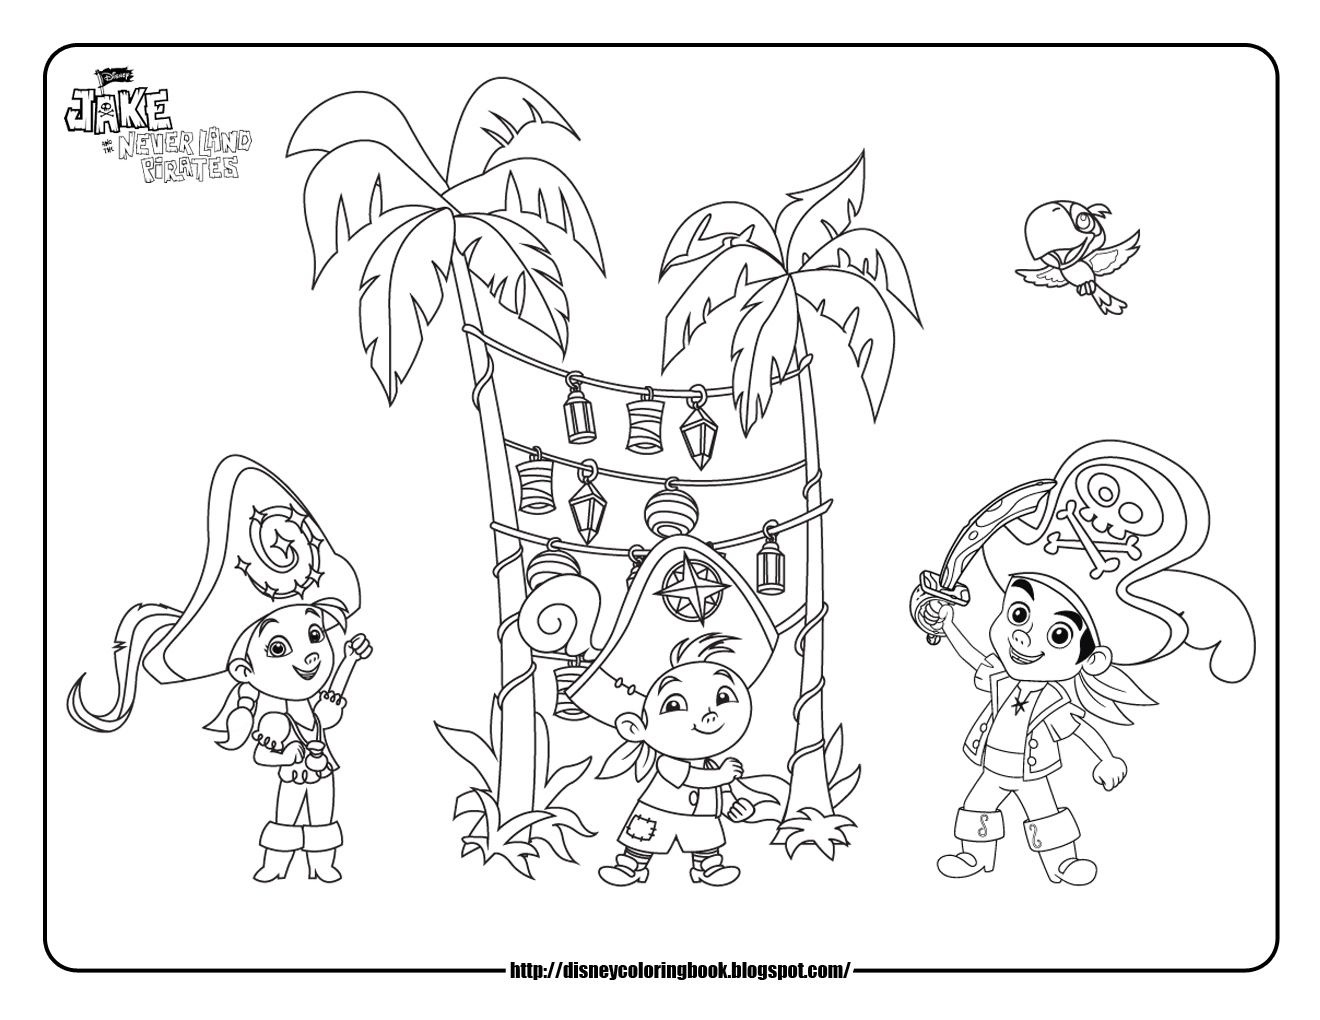 1320x1020 Full Jake And The Neverland Pirates Coloring P